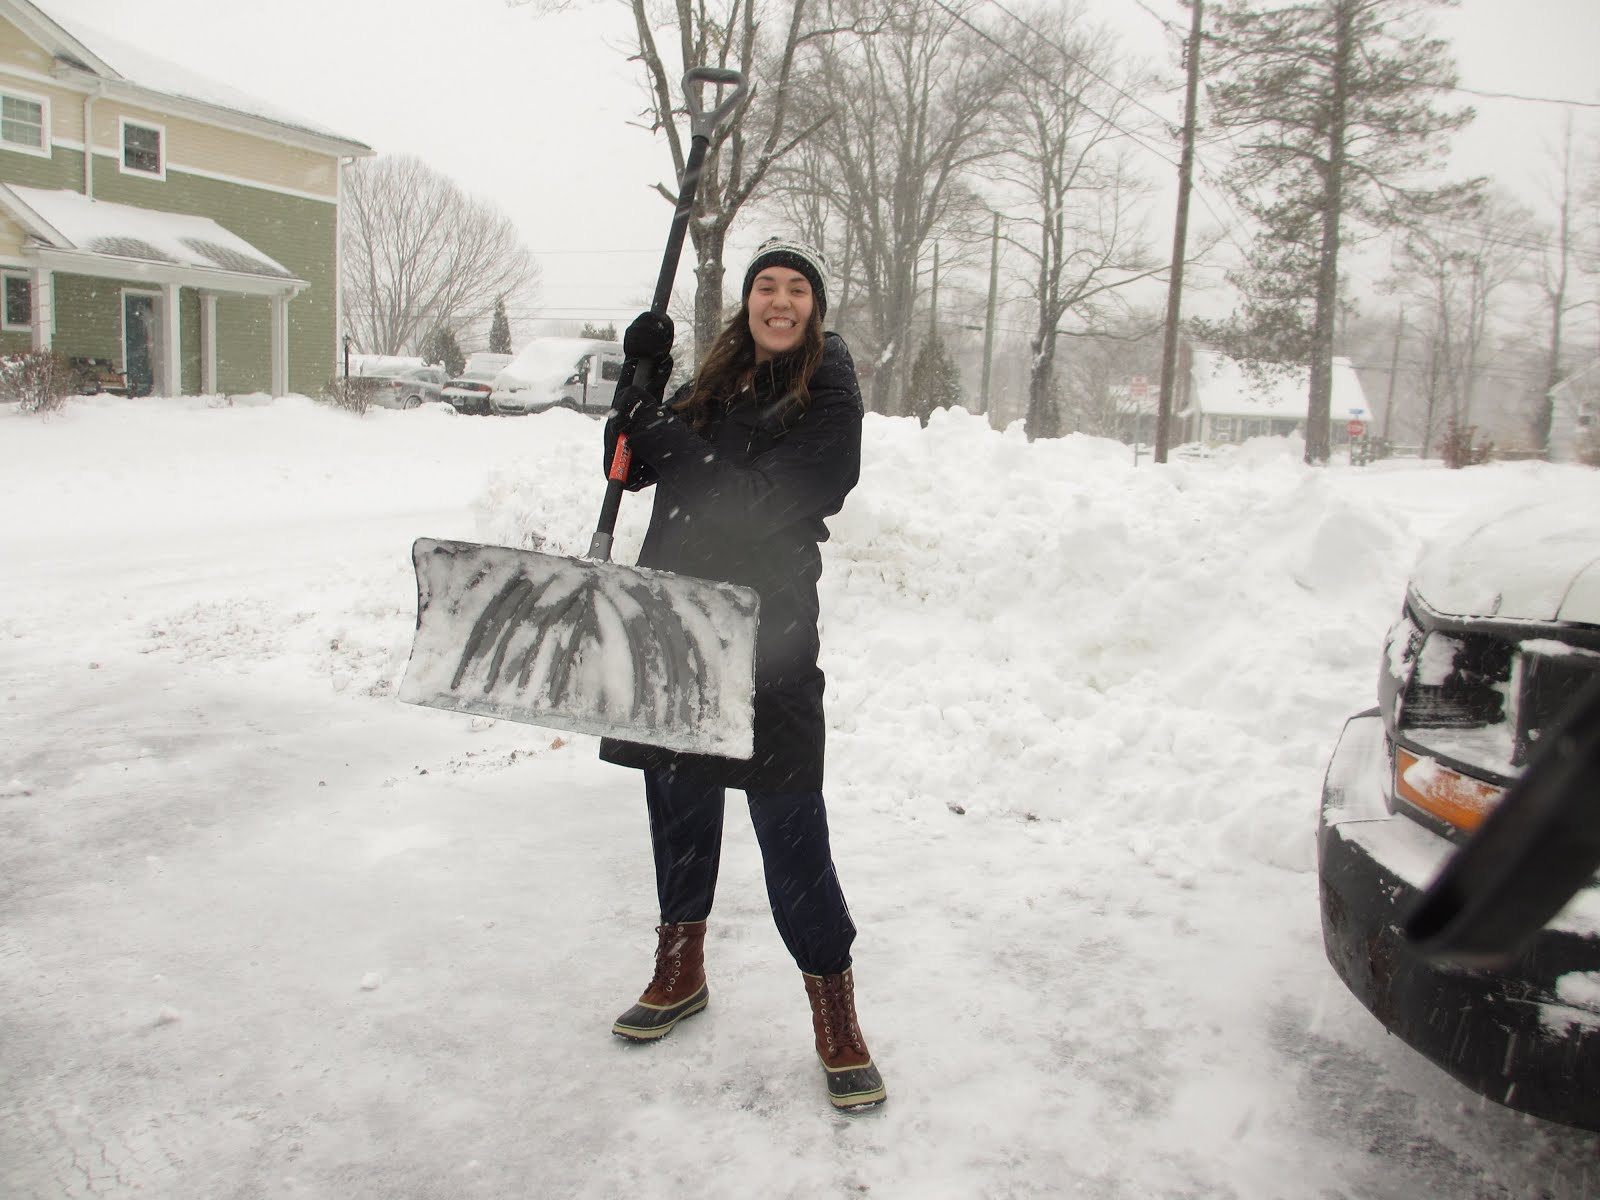 a LDS Missionaries in the snow Latter-day Saint15.JPG